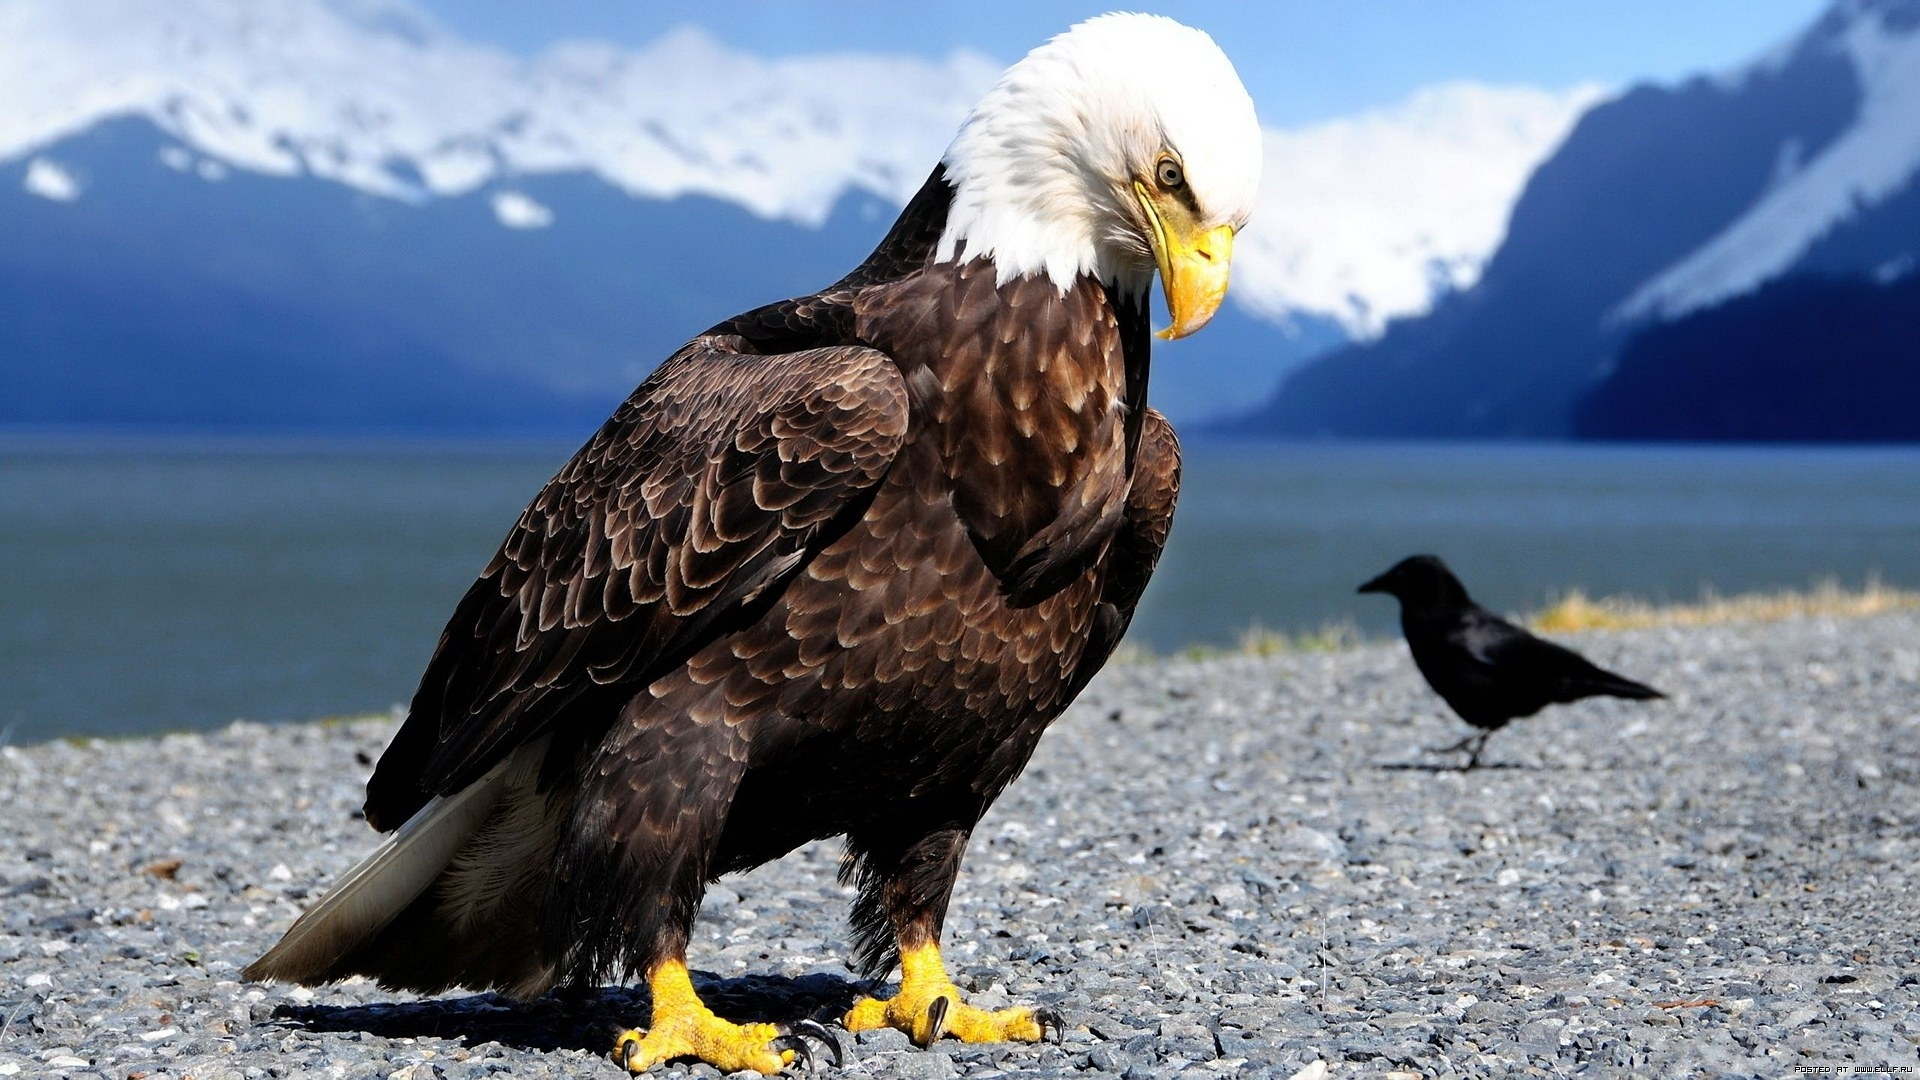 50279 download wallpaper Animals, Birds, Eagles screensavers and pictures for free